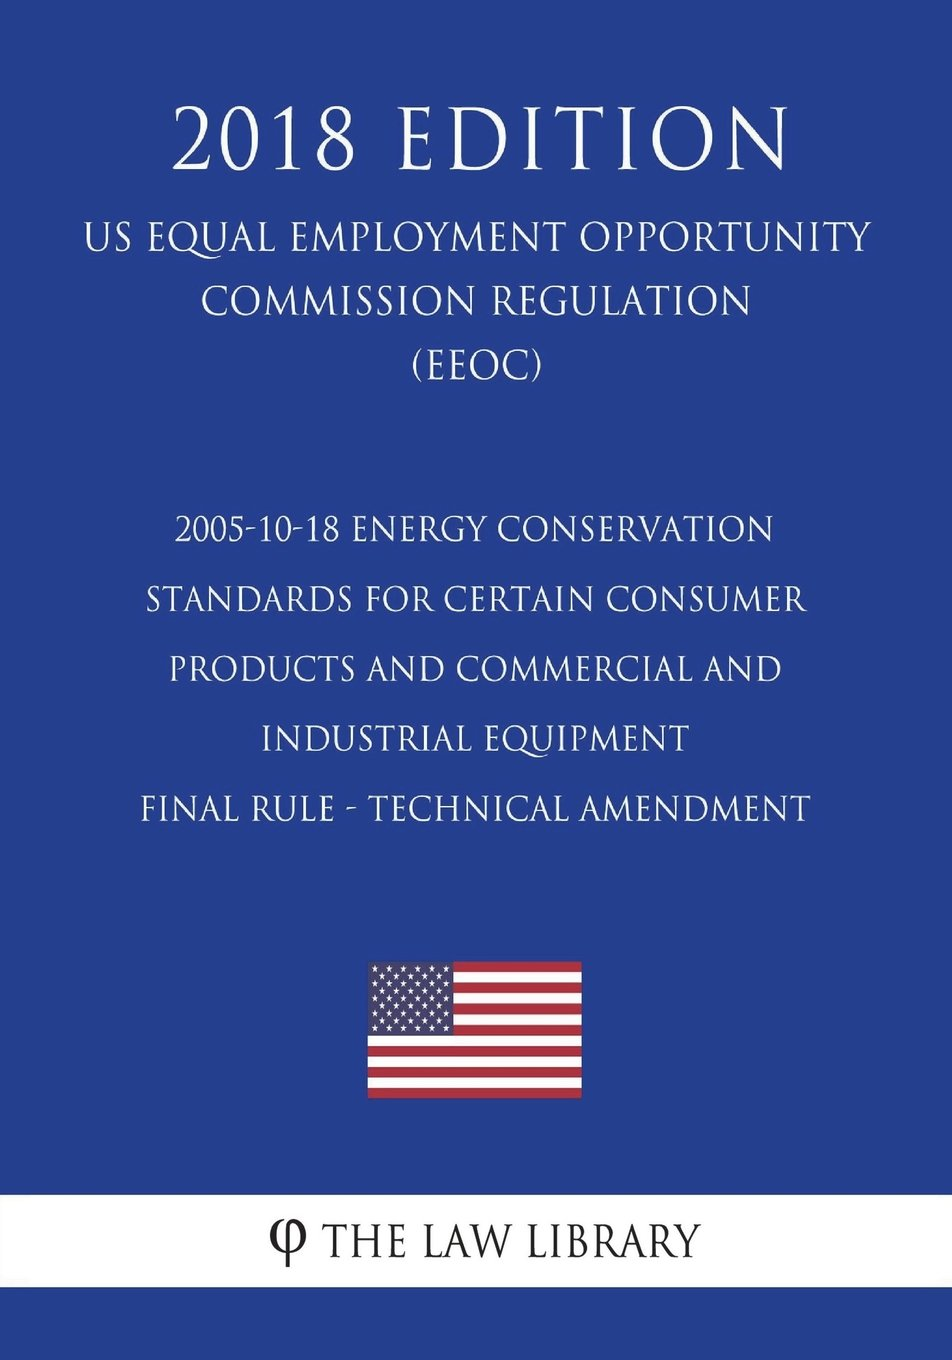 Download 2005-10-18 Energy Conservation Standards for Certain Consumer Products and Commercial and Industrial Equipment - Final rule - technical amendment (US ... Office Regulation) (EERE) (2018 Edition) PDF